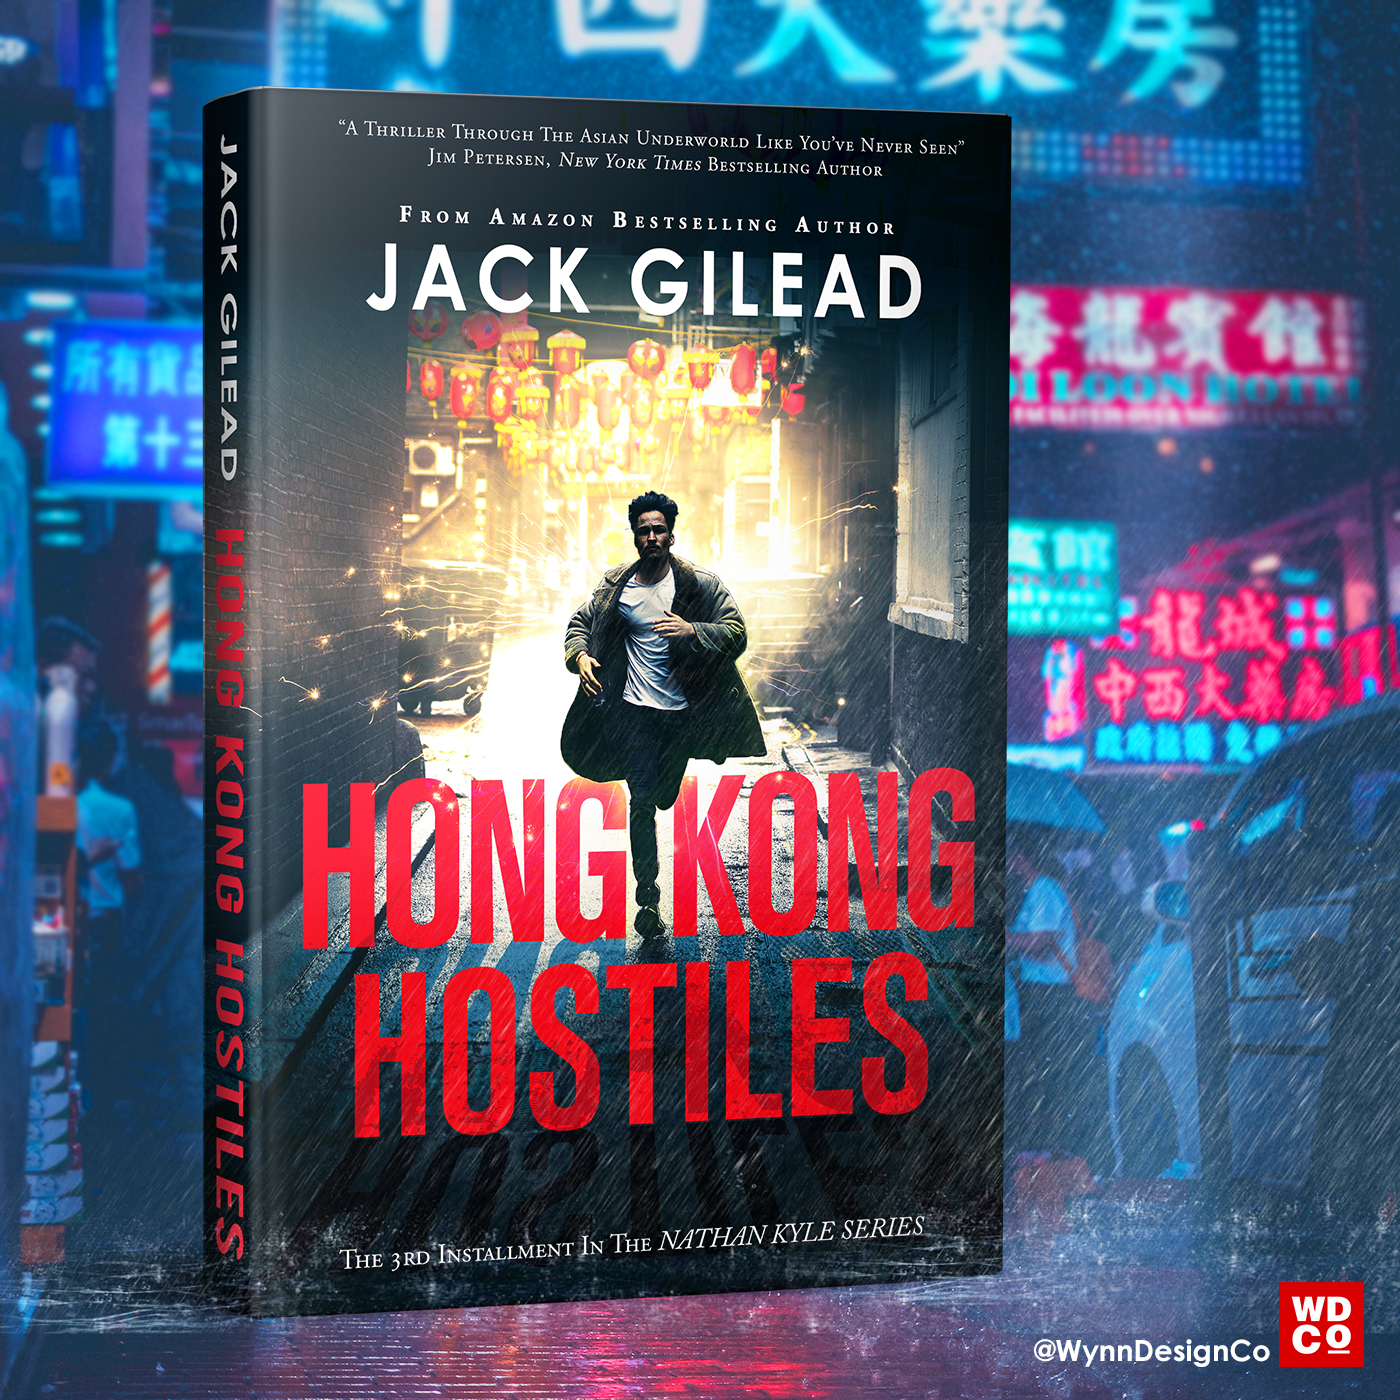 Hong Kong Hostiles - Wynn Design Co